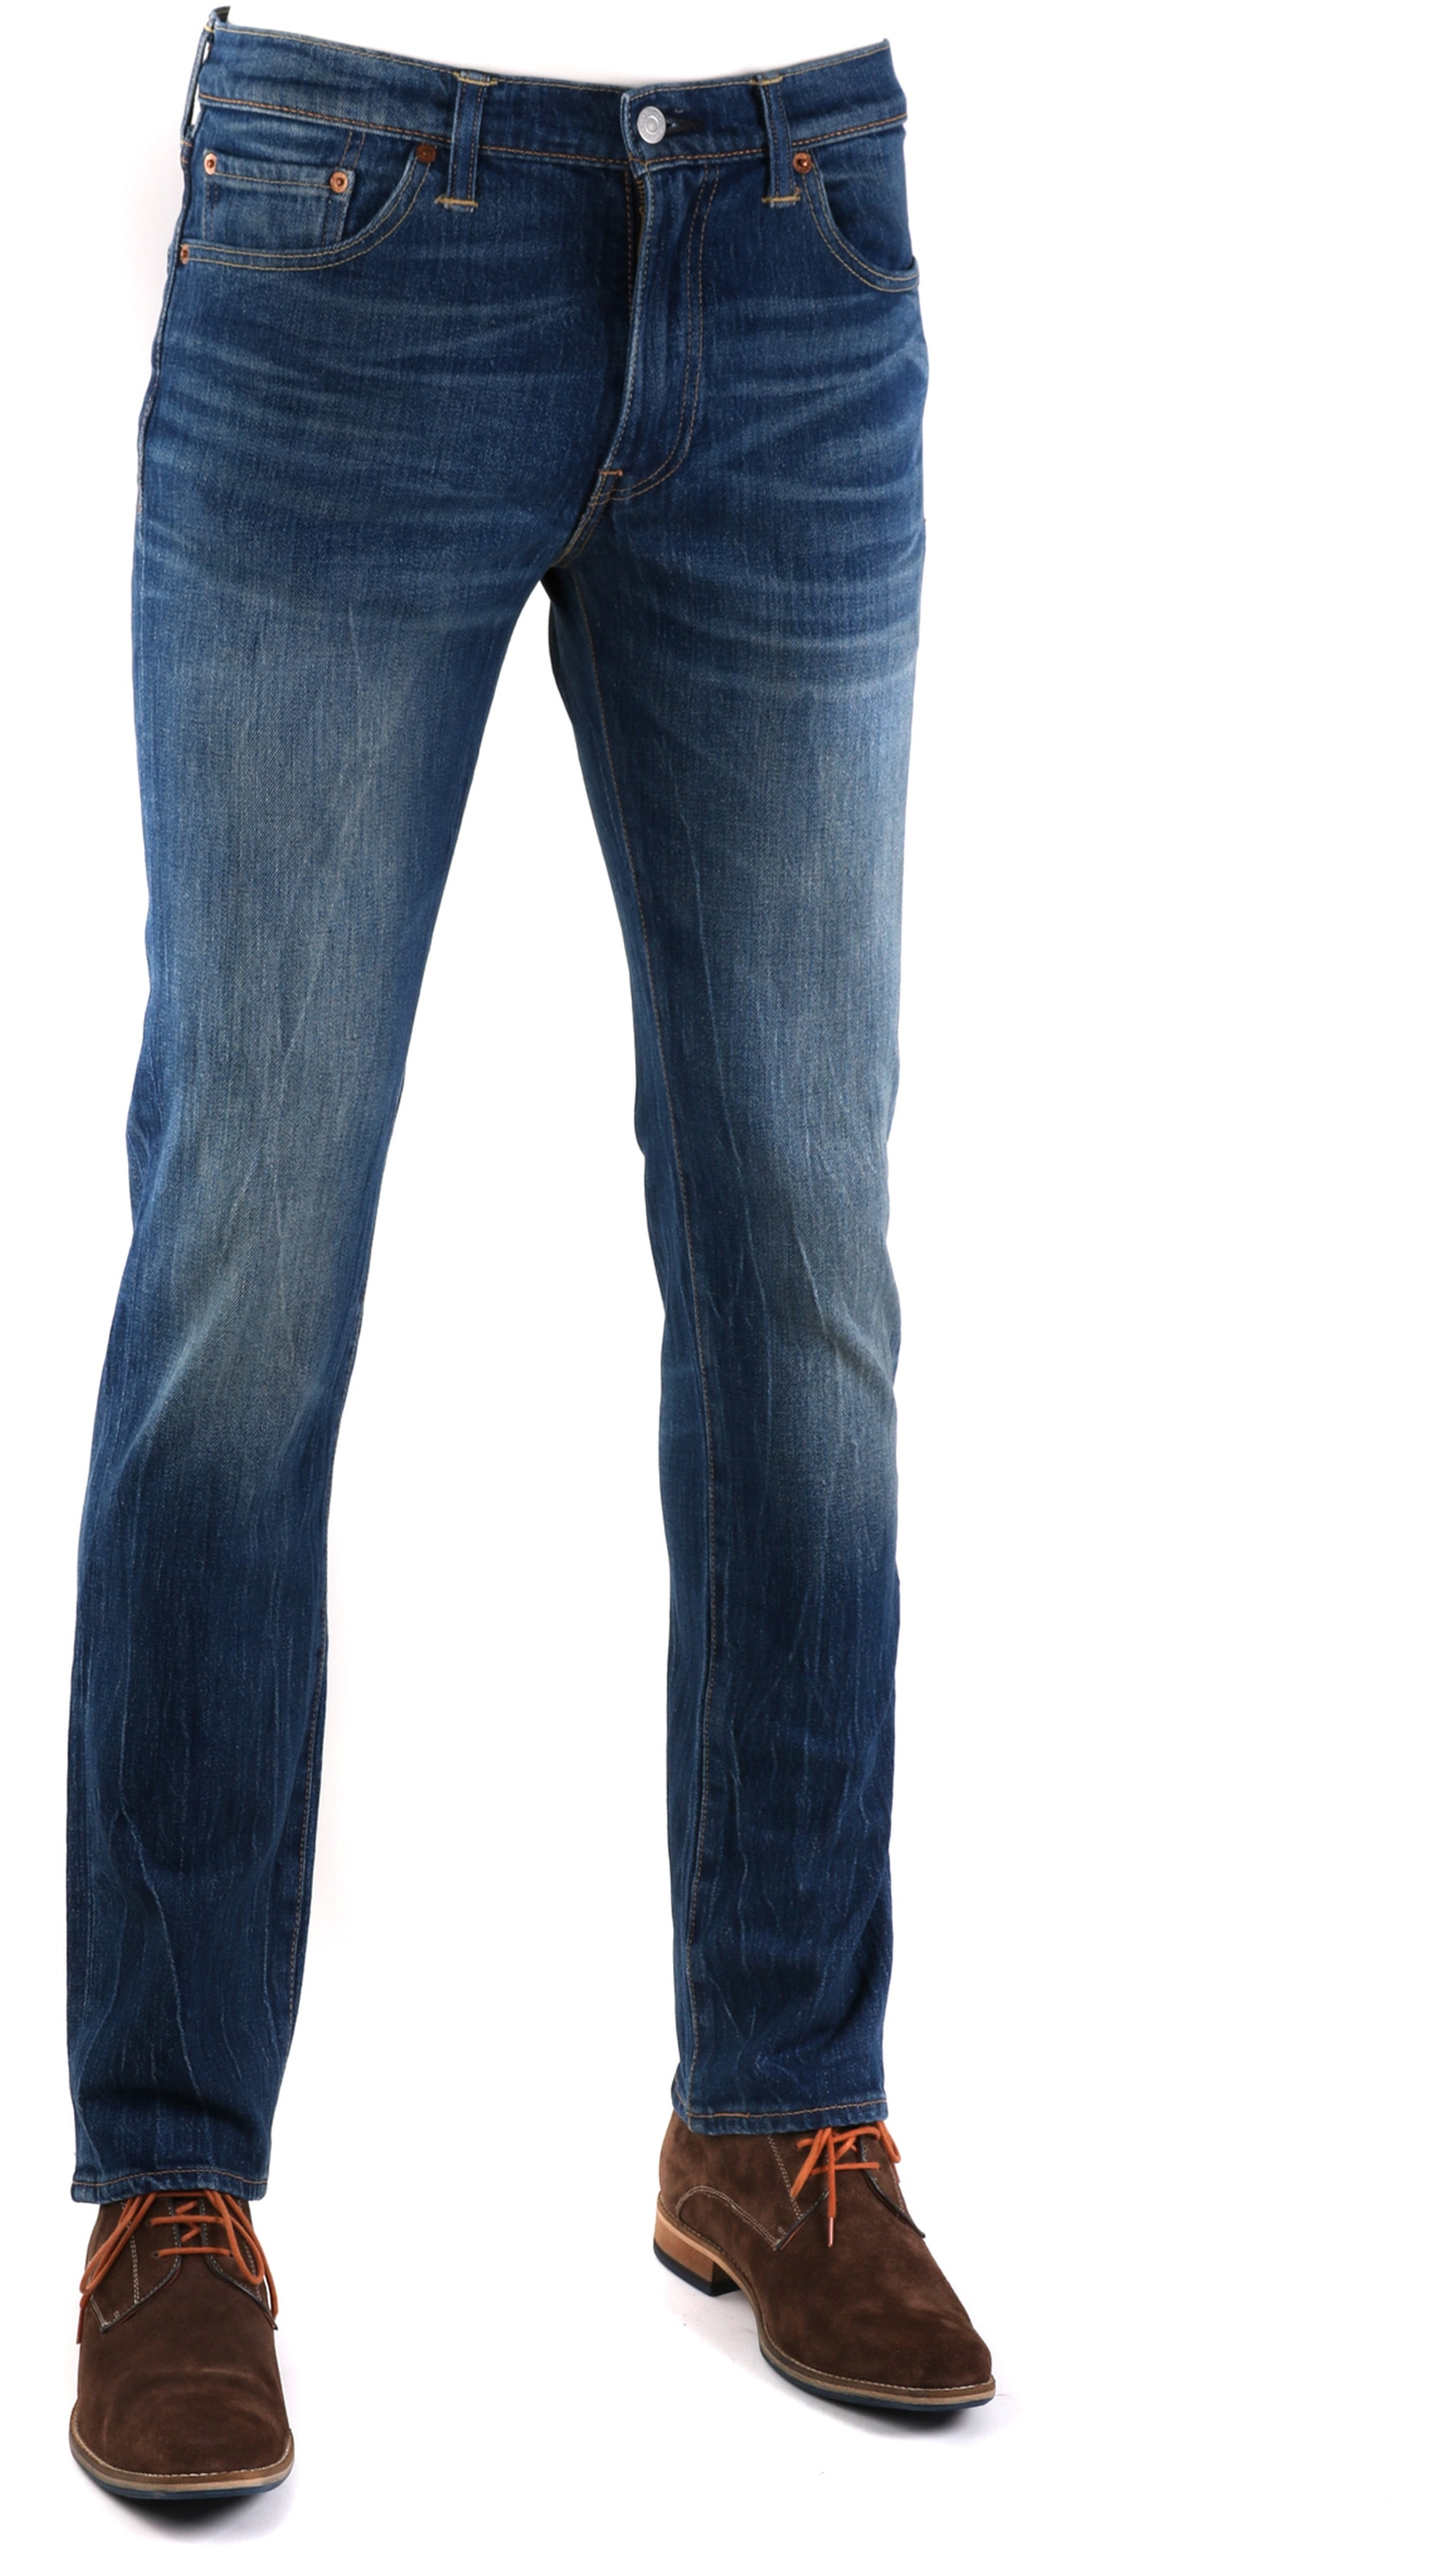 Levi's 511 Jeans Slim Fit Darkblue 1876 foto 0